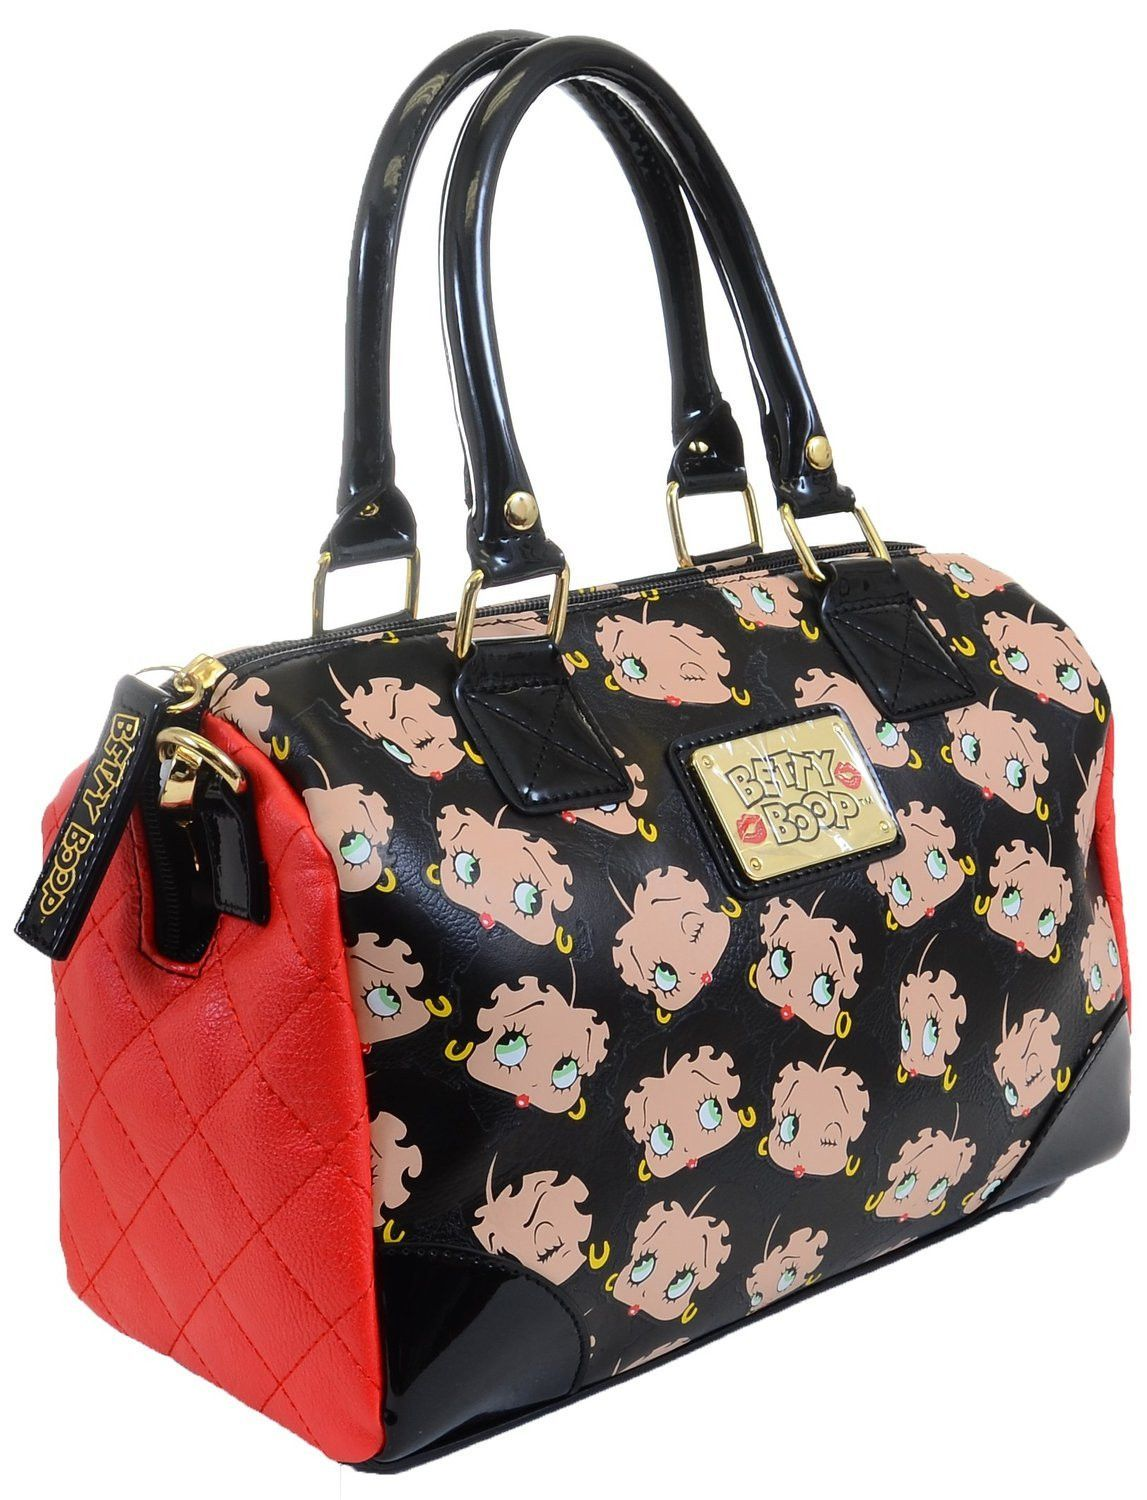 Betty Boop Purses and Wallet   All Betty Boop Purse and Wallets